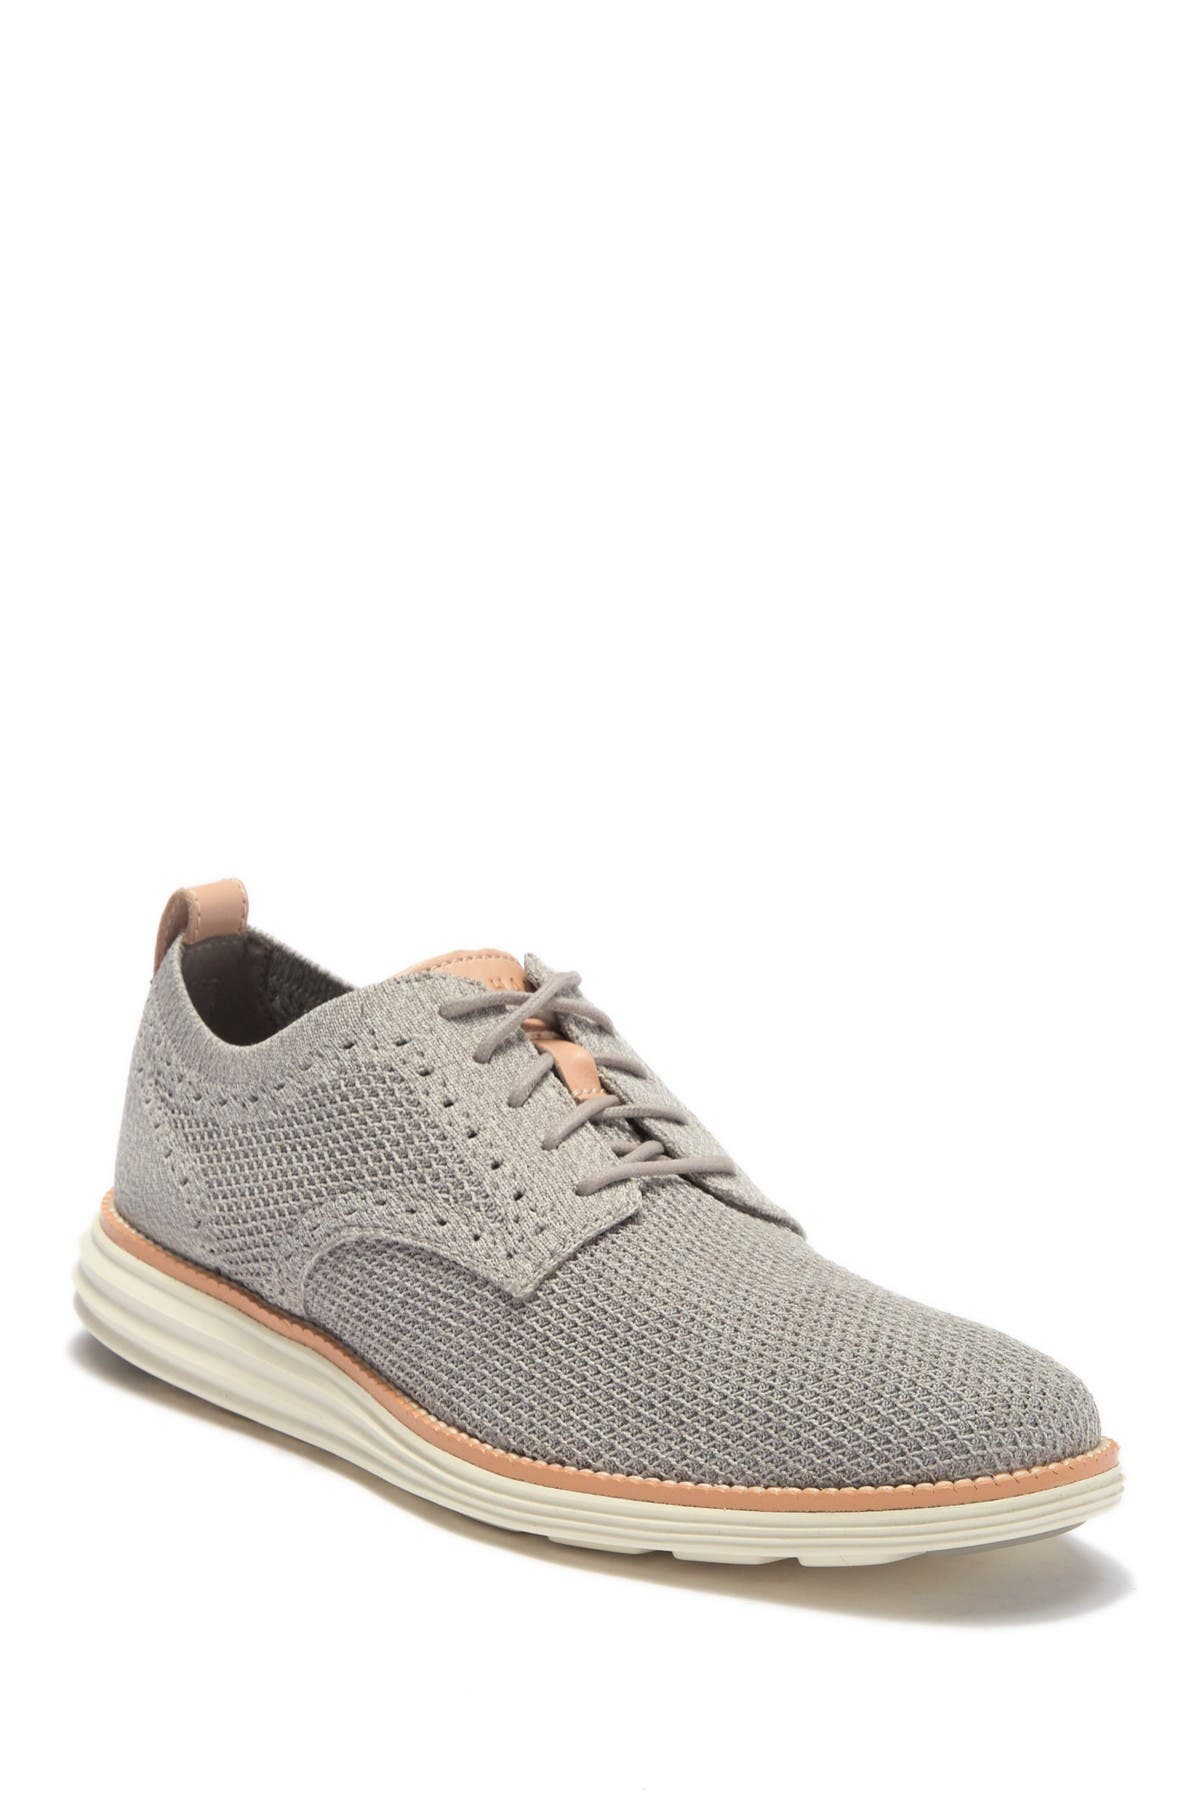 Image of Cole Haan Original Grand Stitchlite Plain Oxford